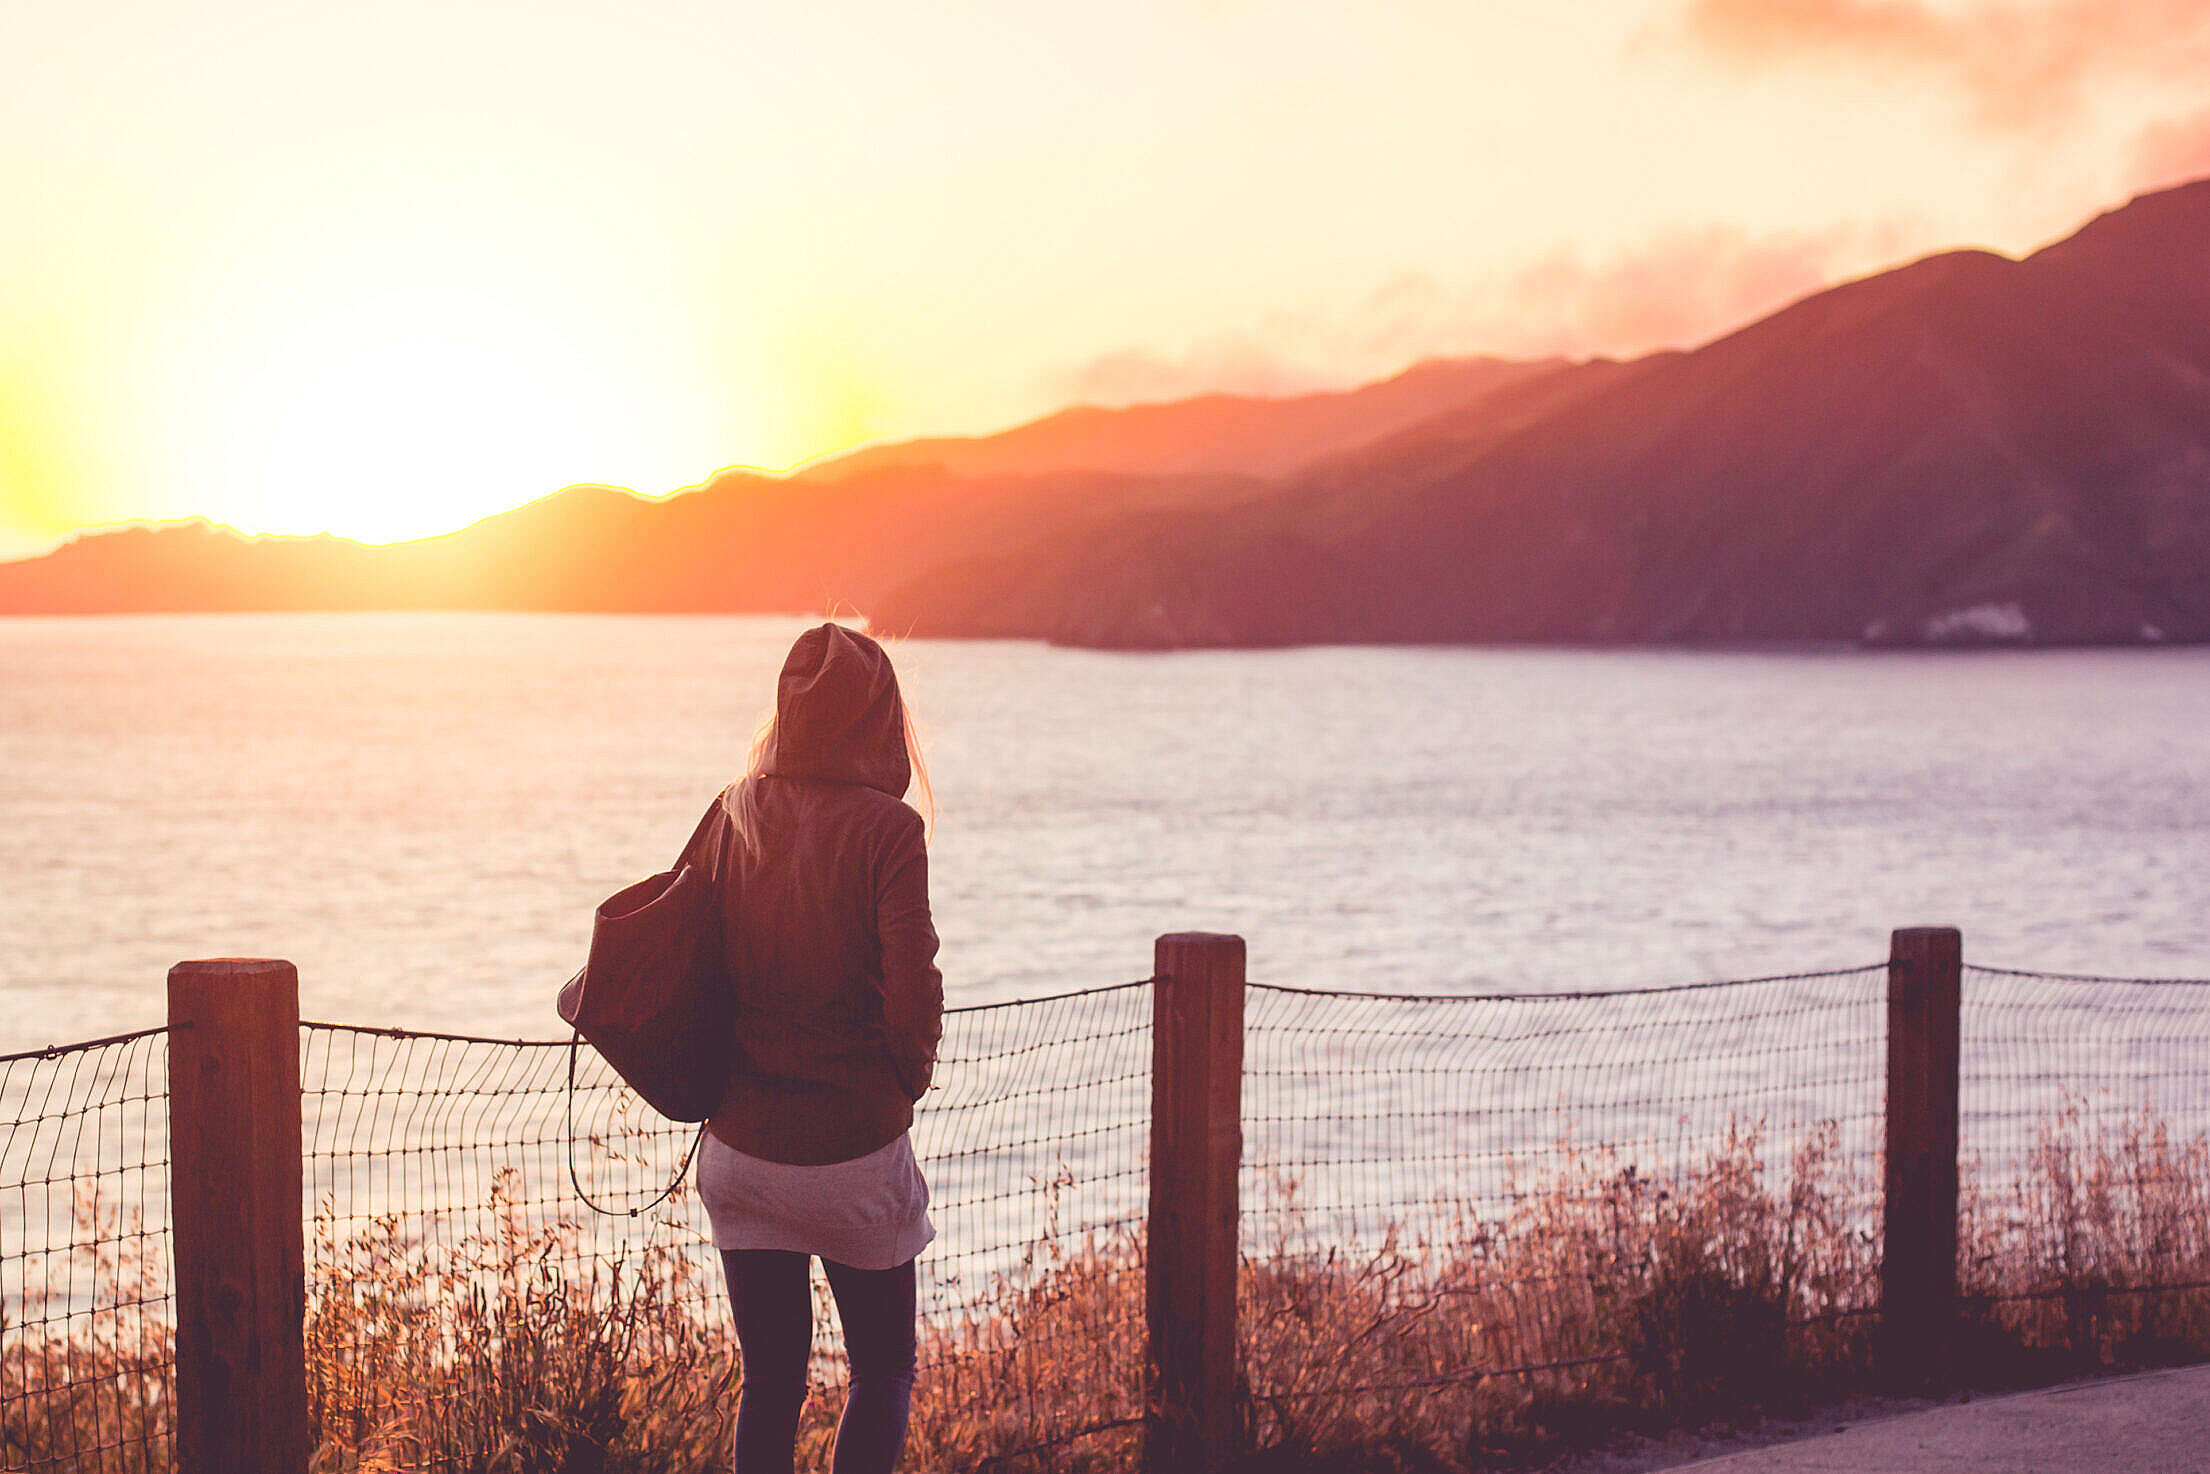 Young Girl on a Walk Near The Shore at Sunset #2 Free Stock Photo